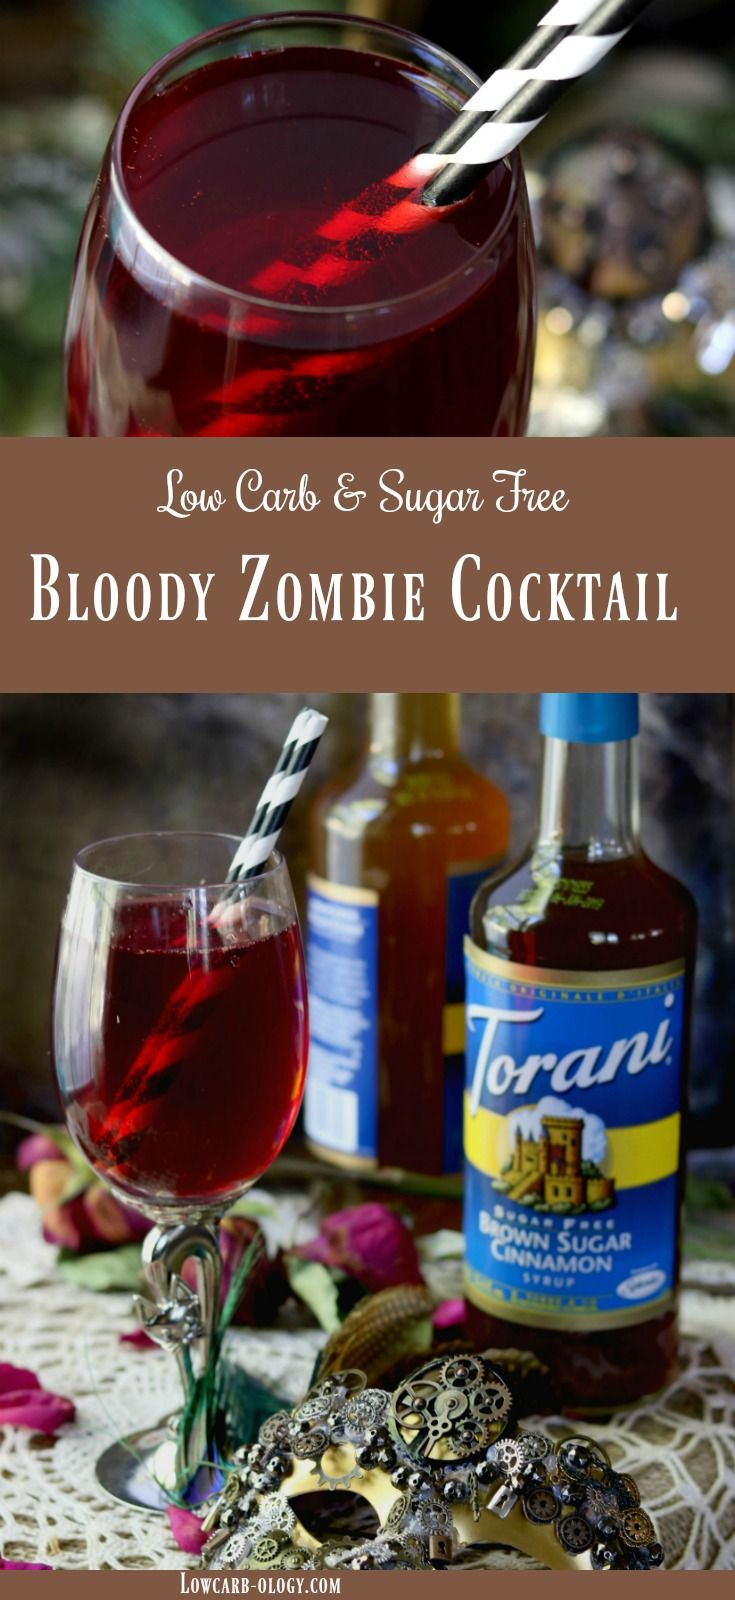 Bloody Zombie Cocktail recipe is low carb and sugar free. Sweet, spicy, and full of rum --  just like the original Zombie cocktail. The difference? This adult beverage helps keep you on your keto friendly diet. #AToraniHalloween